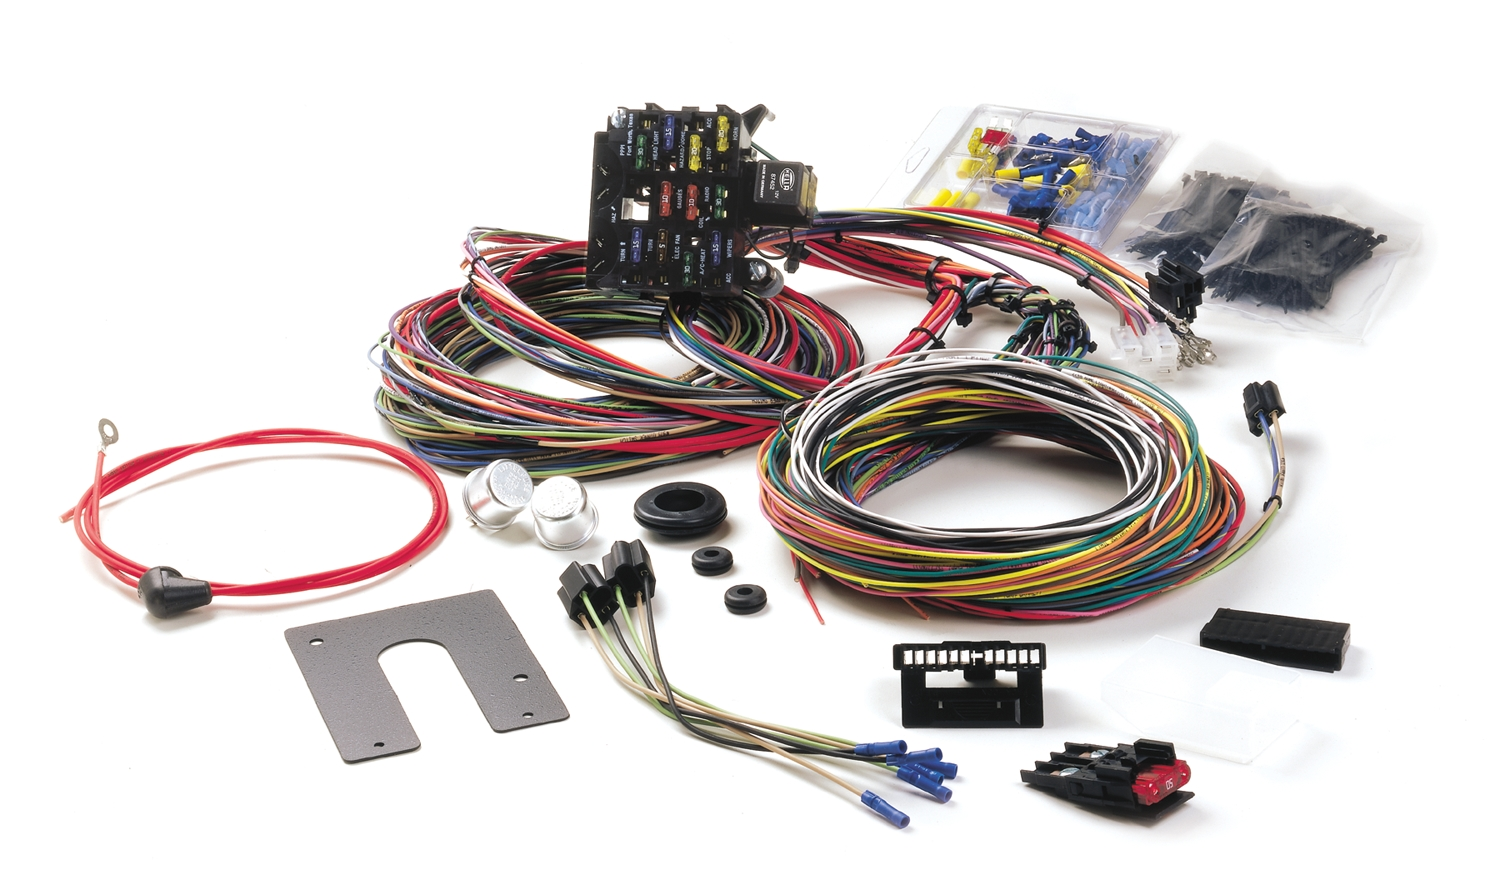 painless performance harness in 39 ford rh hotrodhotline com Universal Hot Rod Wiring Harness Universal Street Rod Wiring Harness